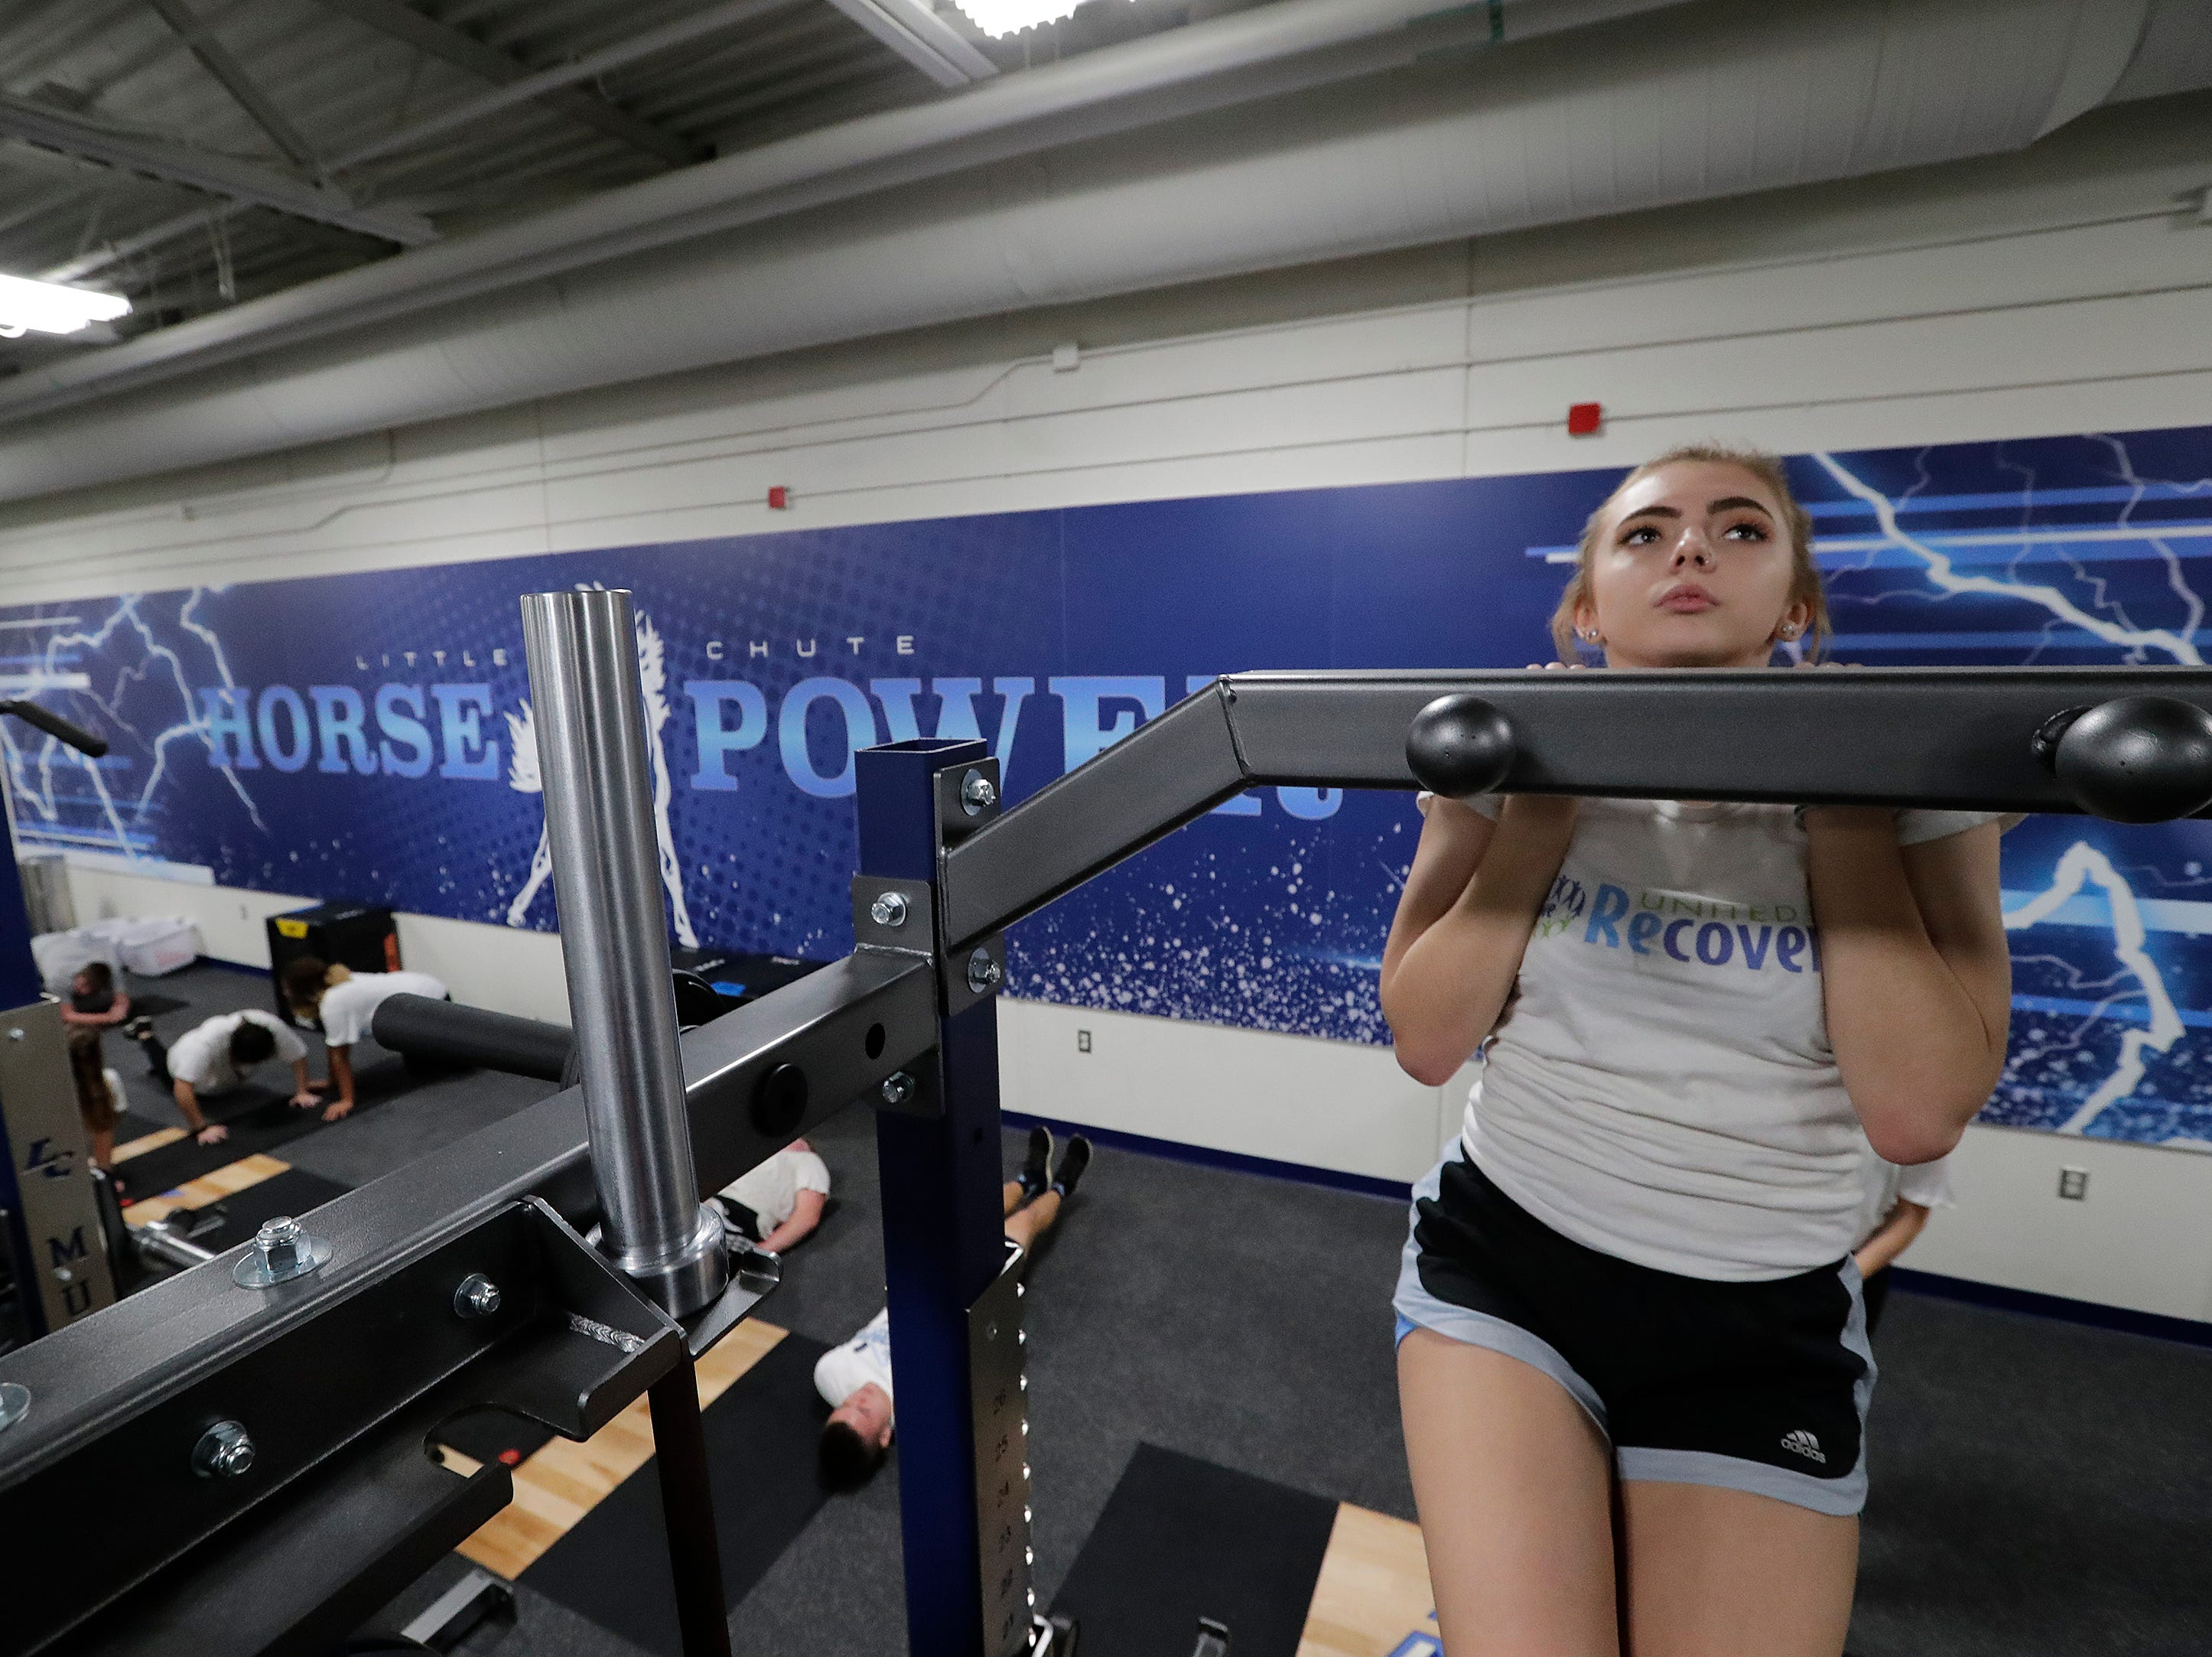 Madison Withrow does chin ups as she participates in the Intro to Strength and Conditioning class in the new fitness center at Little Chute High School Tuesday, November 6, 2018, in Little Chute, Wis. Dan Powers/USA TODAY NETWORK-Wisconsin